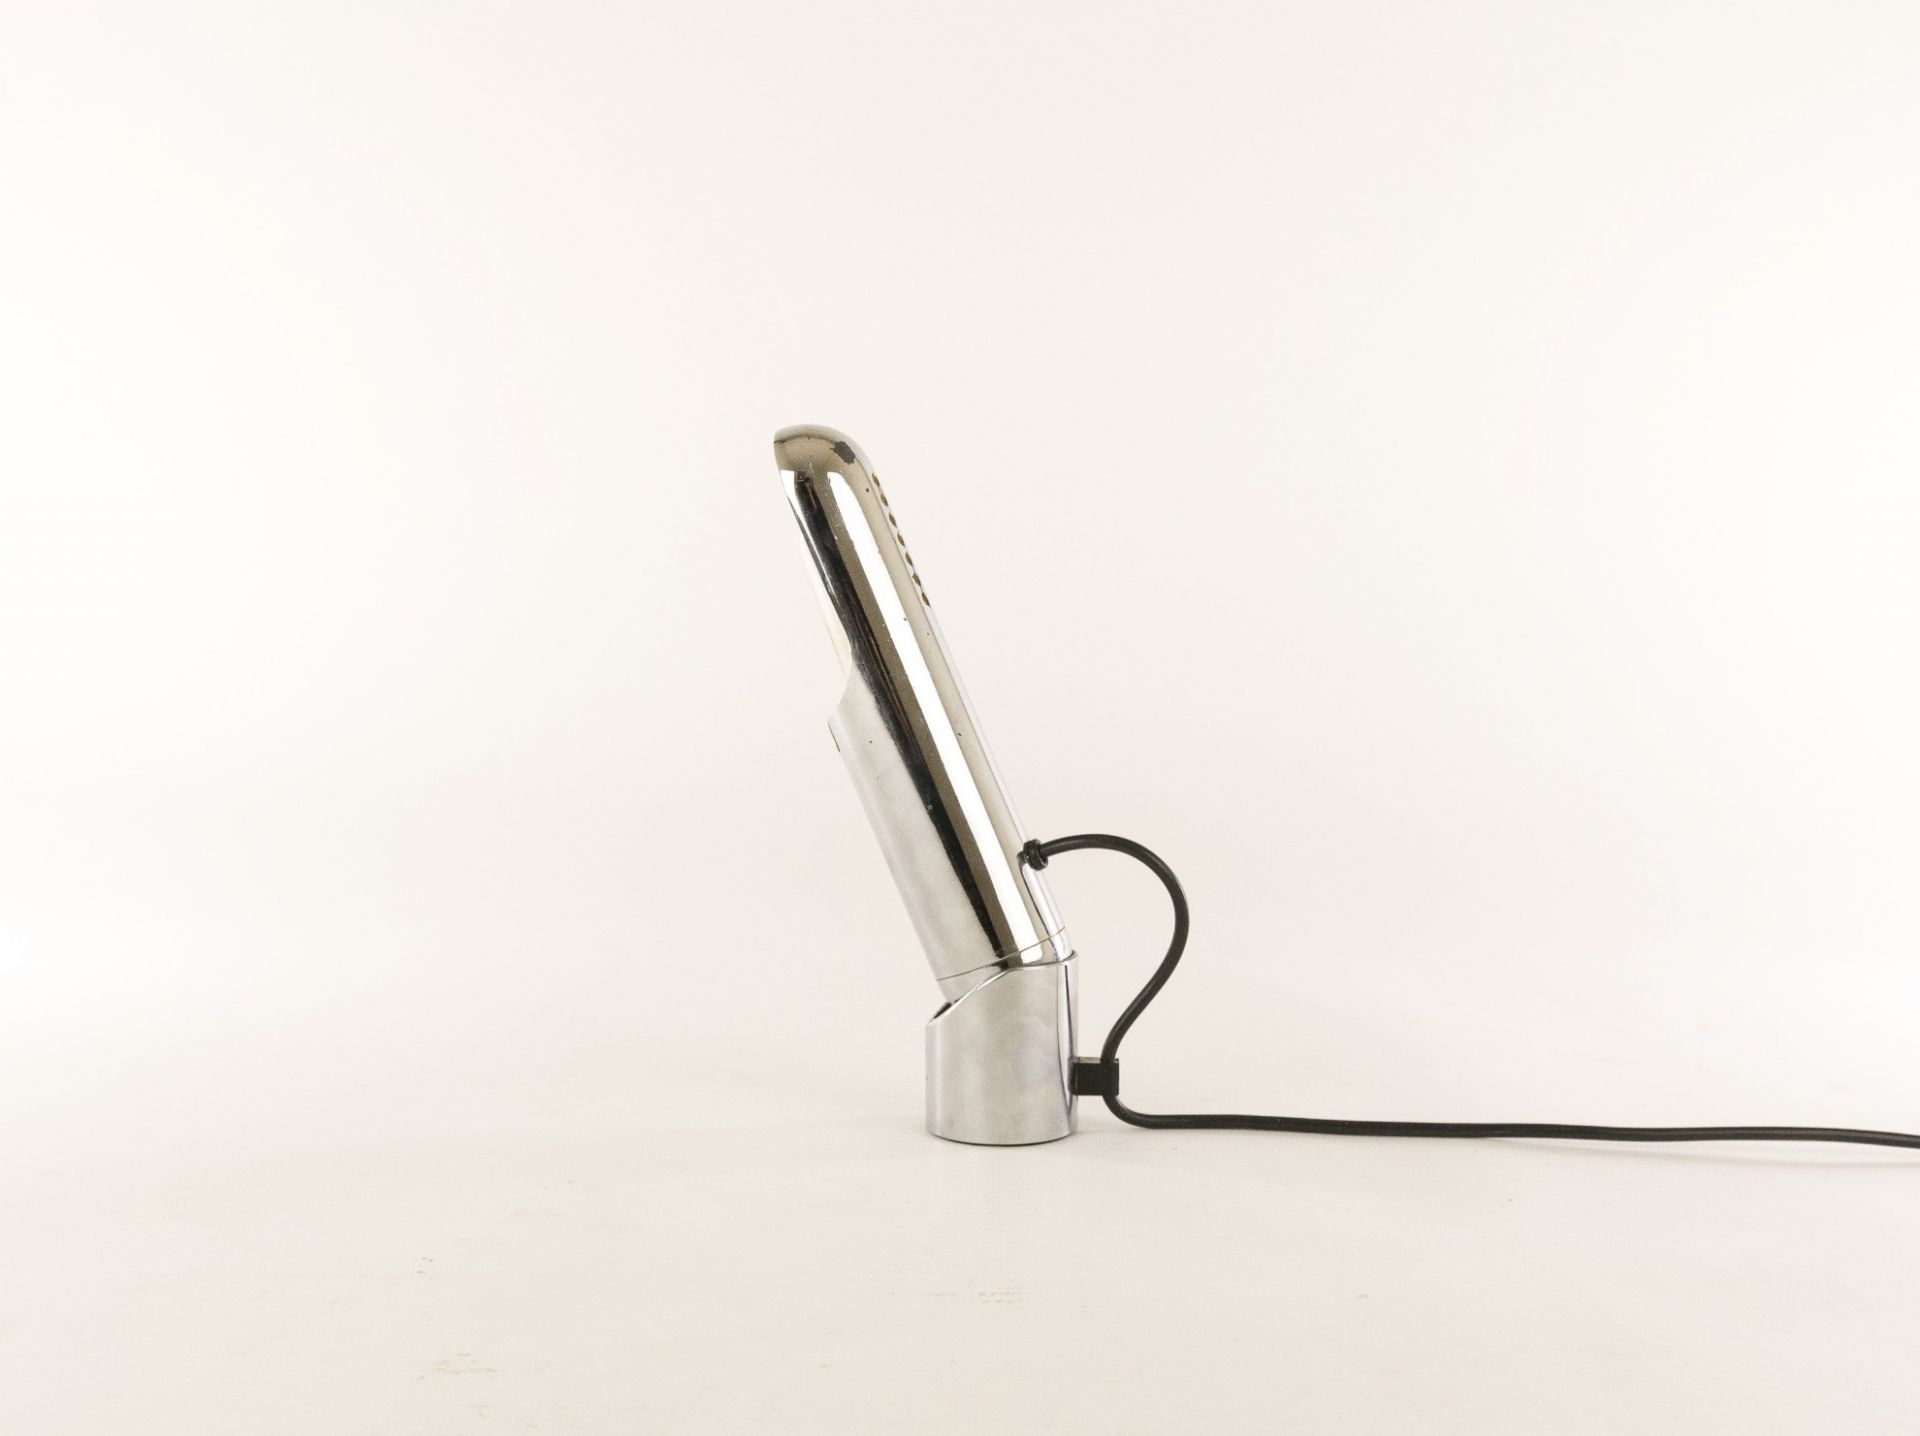 Gecko table lamp by Gianfranco Frattini for Leuka, 1970s